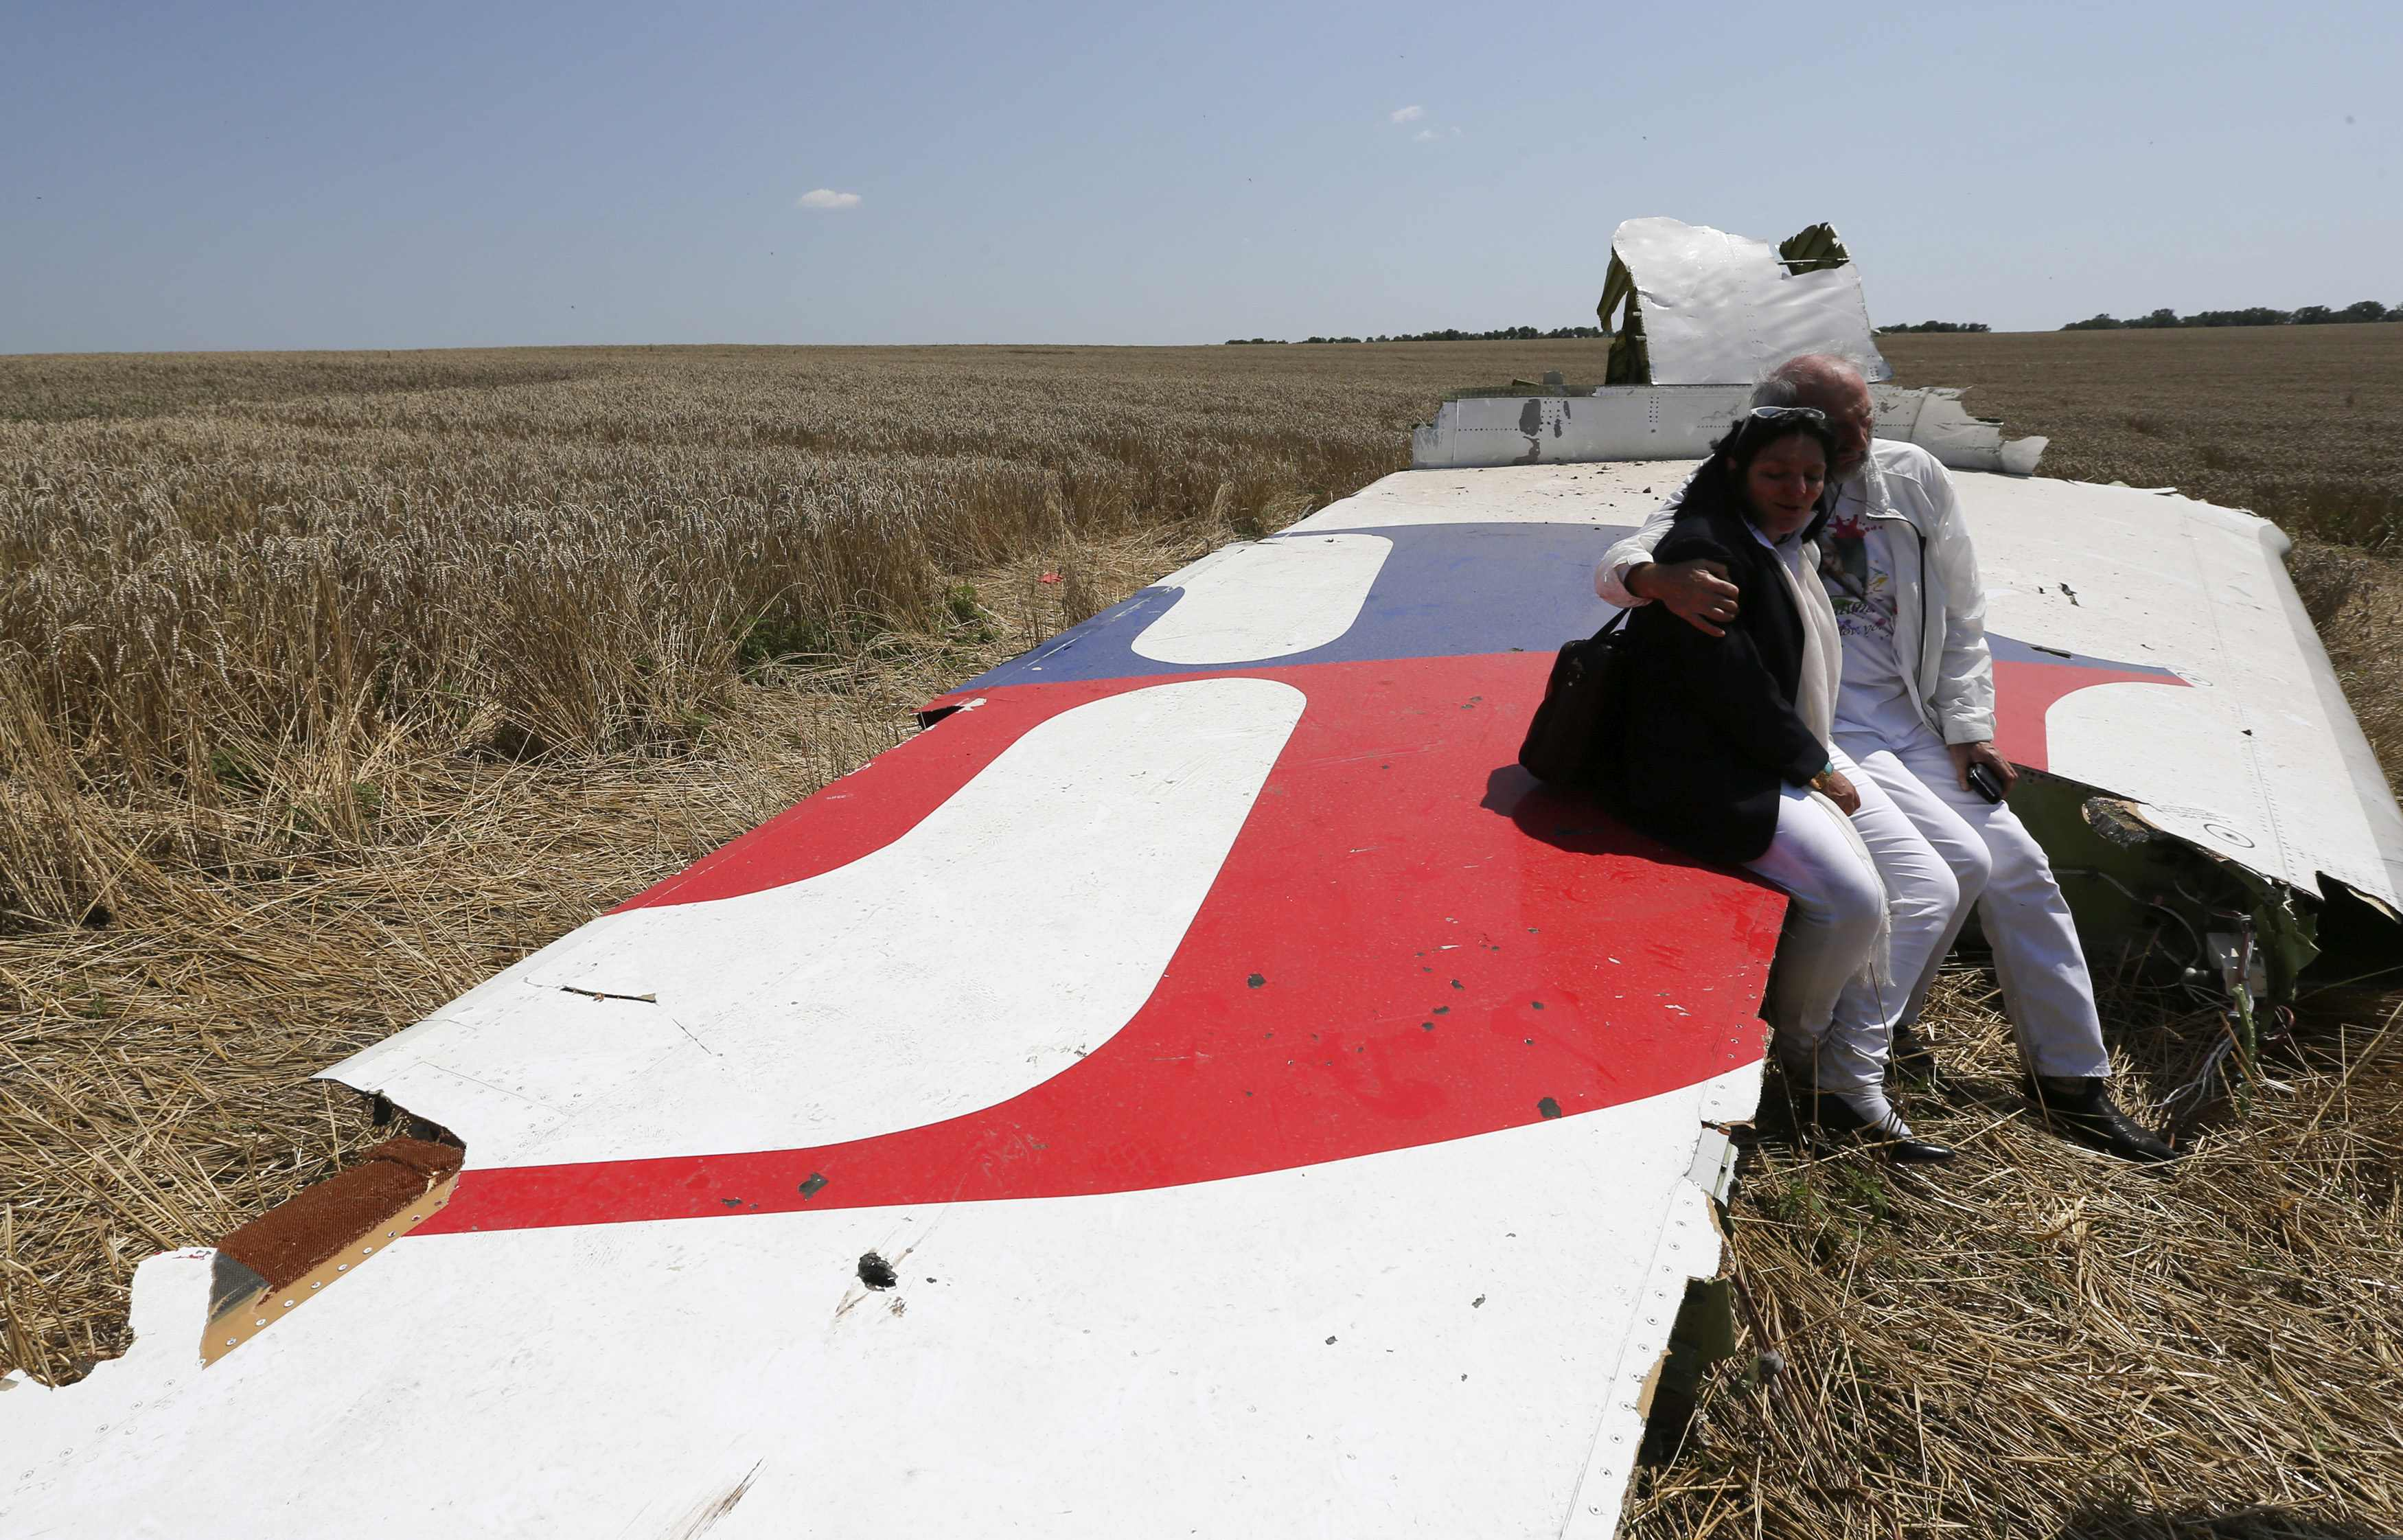 George and Angela Dyczynski sit on a piece of wreckage of the downed Malaysia Airlines Flight MH17, during their visit to the crash site near the village of Hrabove (Grabovo), in Donetsk region in this July 26, 2014 file photo. The 19,500 staff of Malaysia Airlines (MAS) face a new ordeal - a quarter of them may lose their jobs at the unprofitable airline, hit by two jet disasters this year. Flight MH370 remains untraced since its disappearance en route from Kuala Lumpur to Beijing in March. REUTERS/Sergei Karpukhin (UKRAINE - Tags: POLITICS DISASTER TRANSPORT CIVIL UNREST)